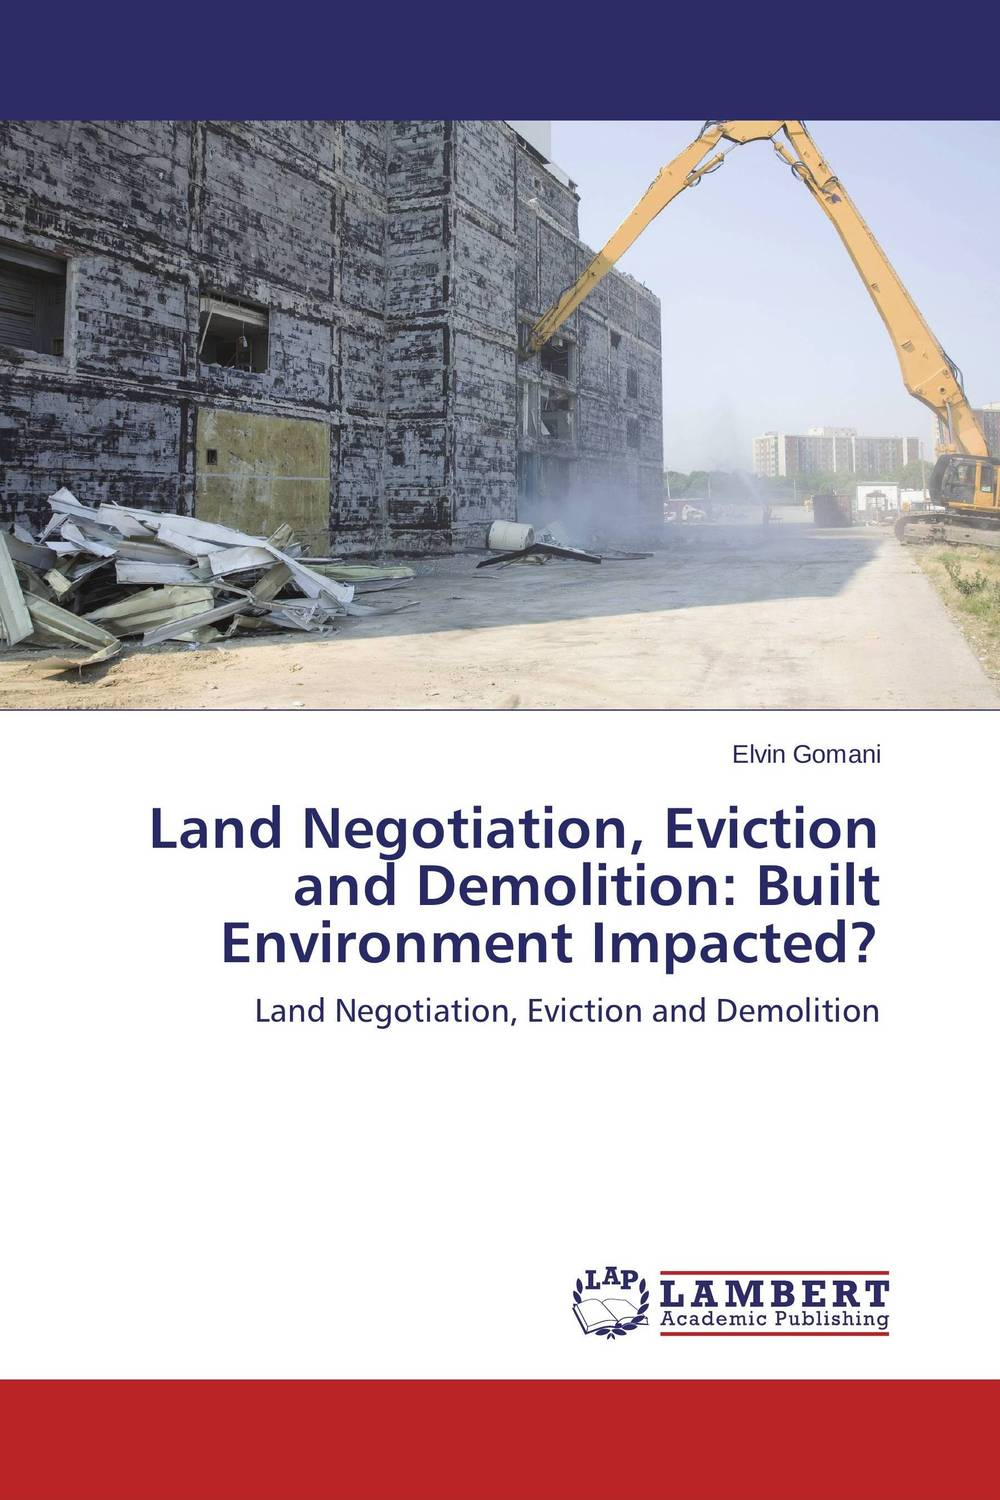 Land Negotiation, Eviction and Demolition: Built Environment Impacted? evicted